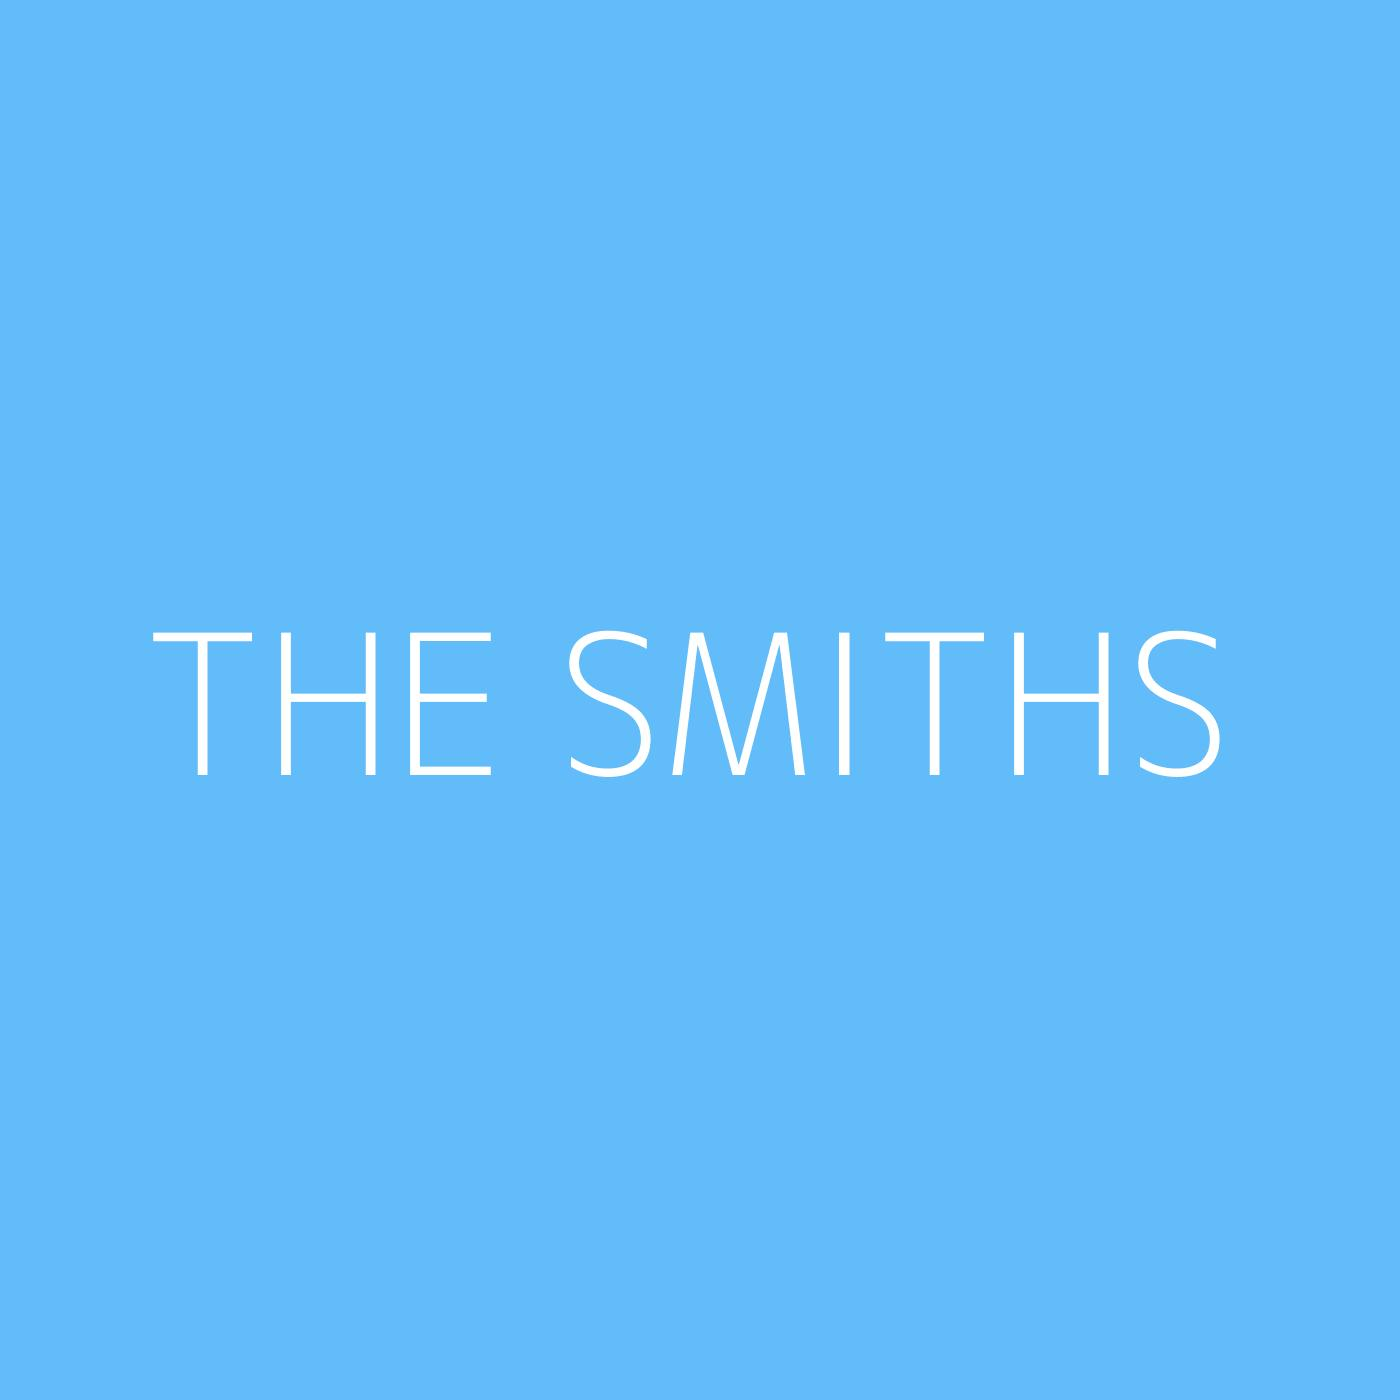 The Smiths Playlist Artwork